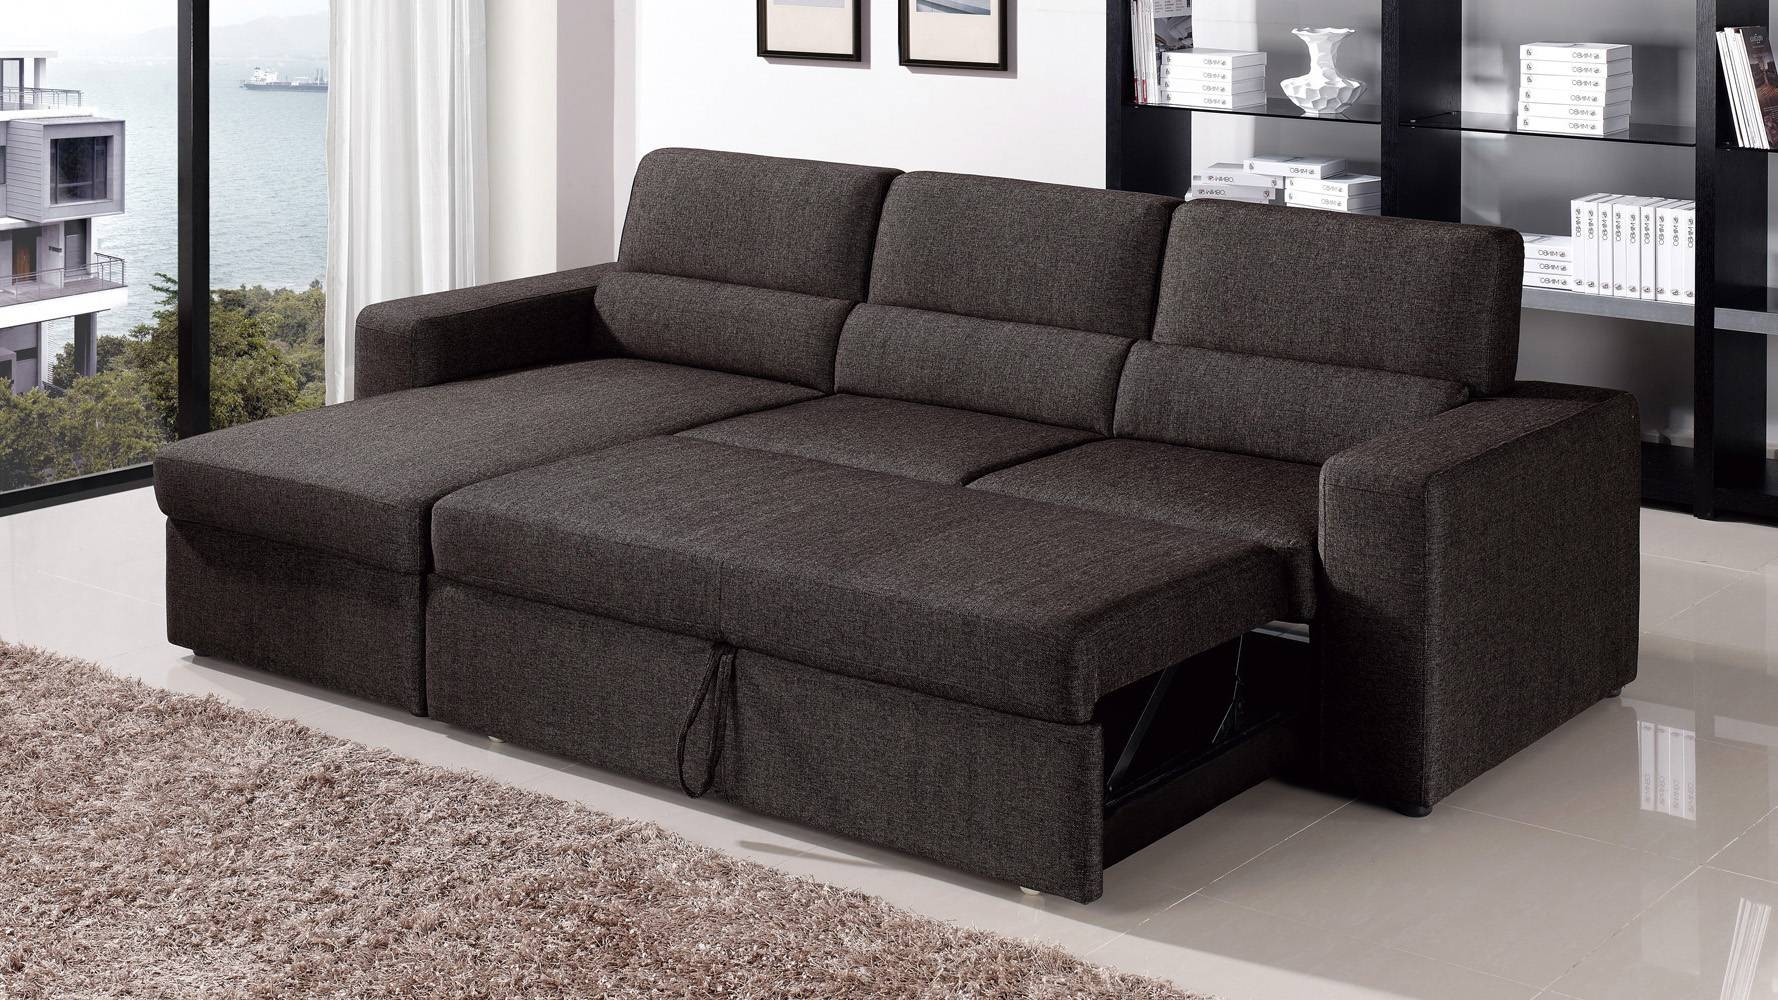 Sleeper Sectional Sofa With Storage Chaise | Tehranmix Decoration In Small Sectional Sofas With Storage (View 13 of 15)